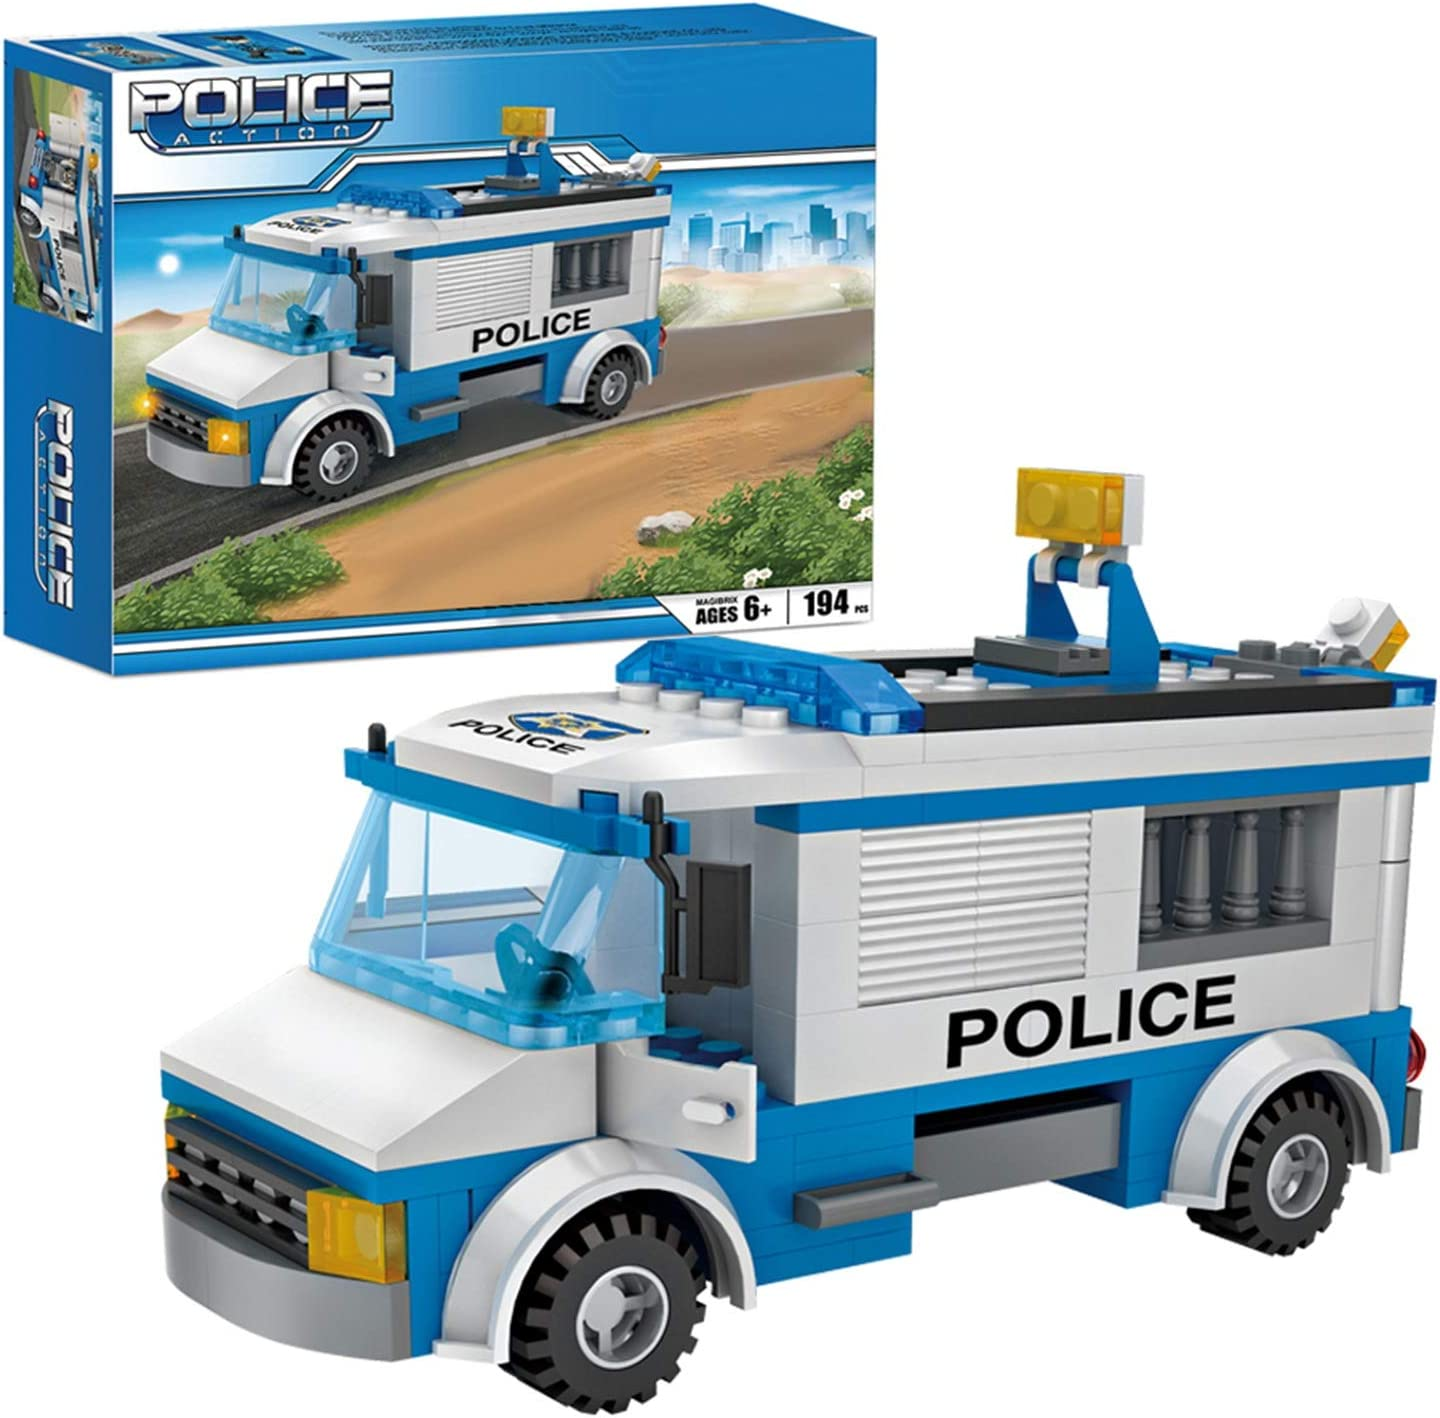 City Police Car Building Sets 194 Pieces Police Patrol Car Toys Cop Car Prisoner Transporter Building Kit for Boys and Girls Age 6 and up